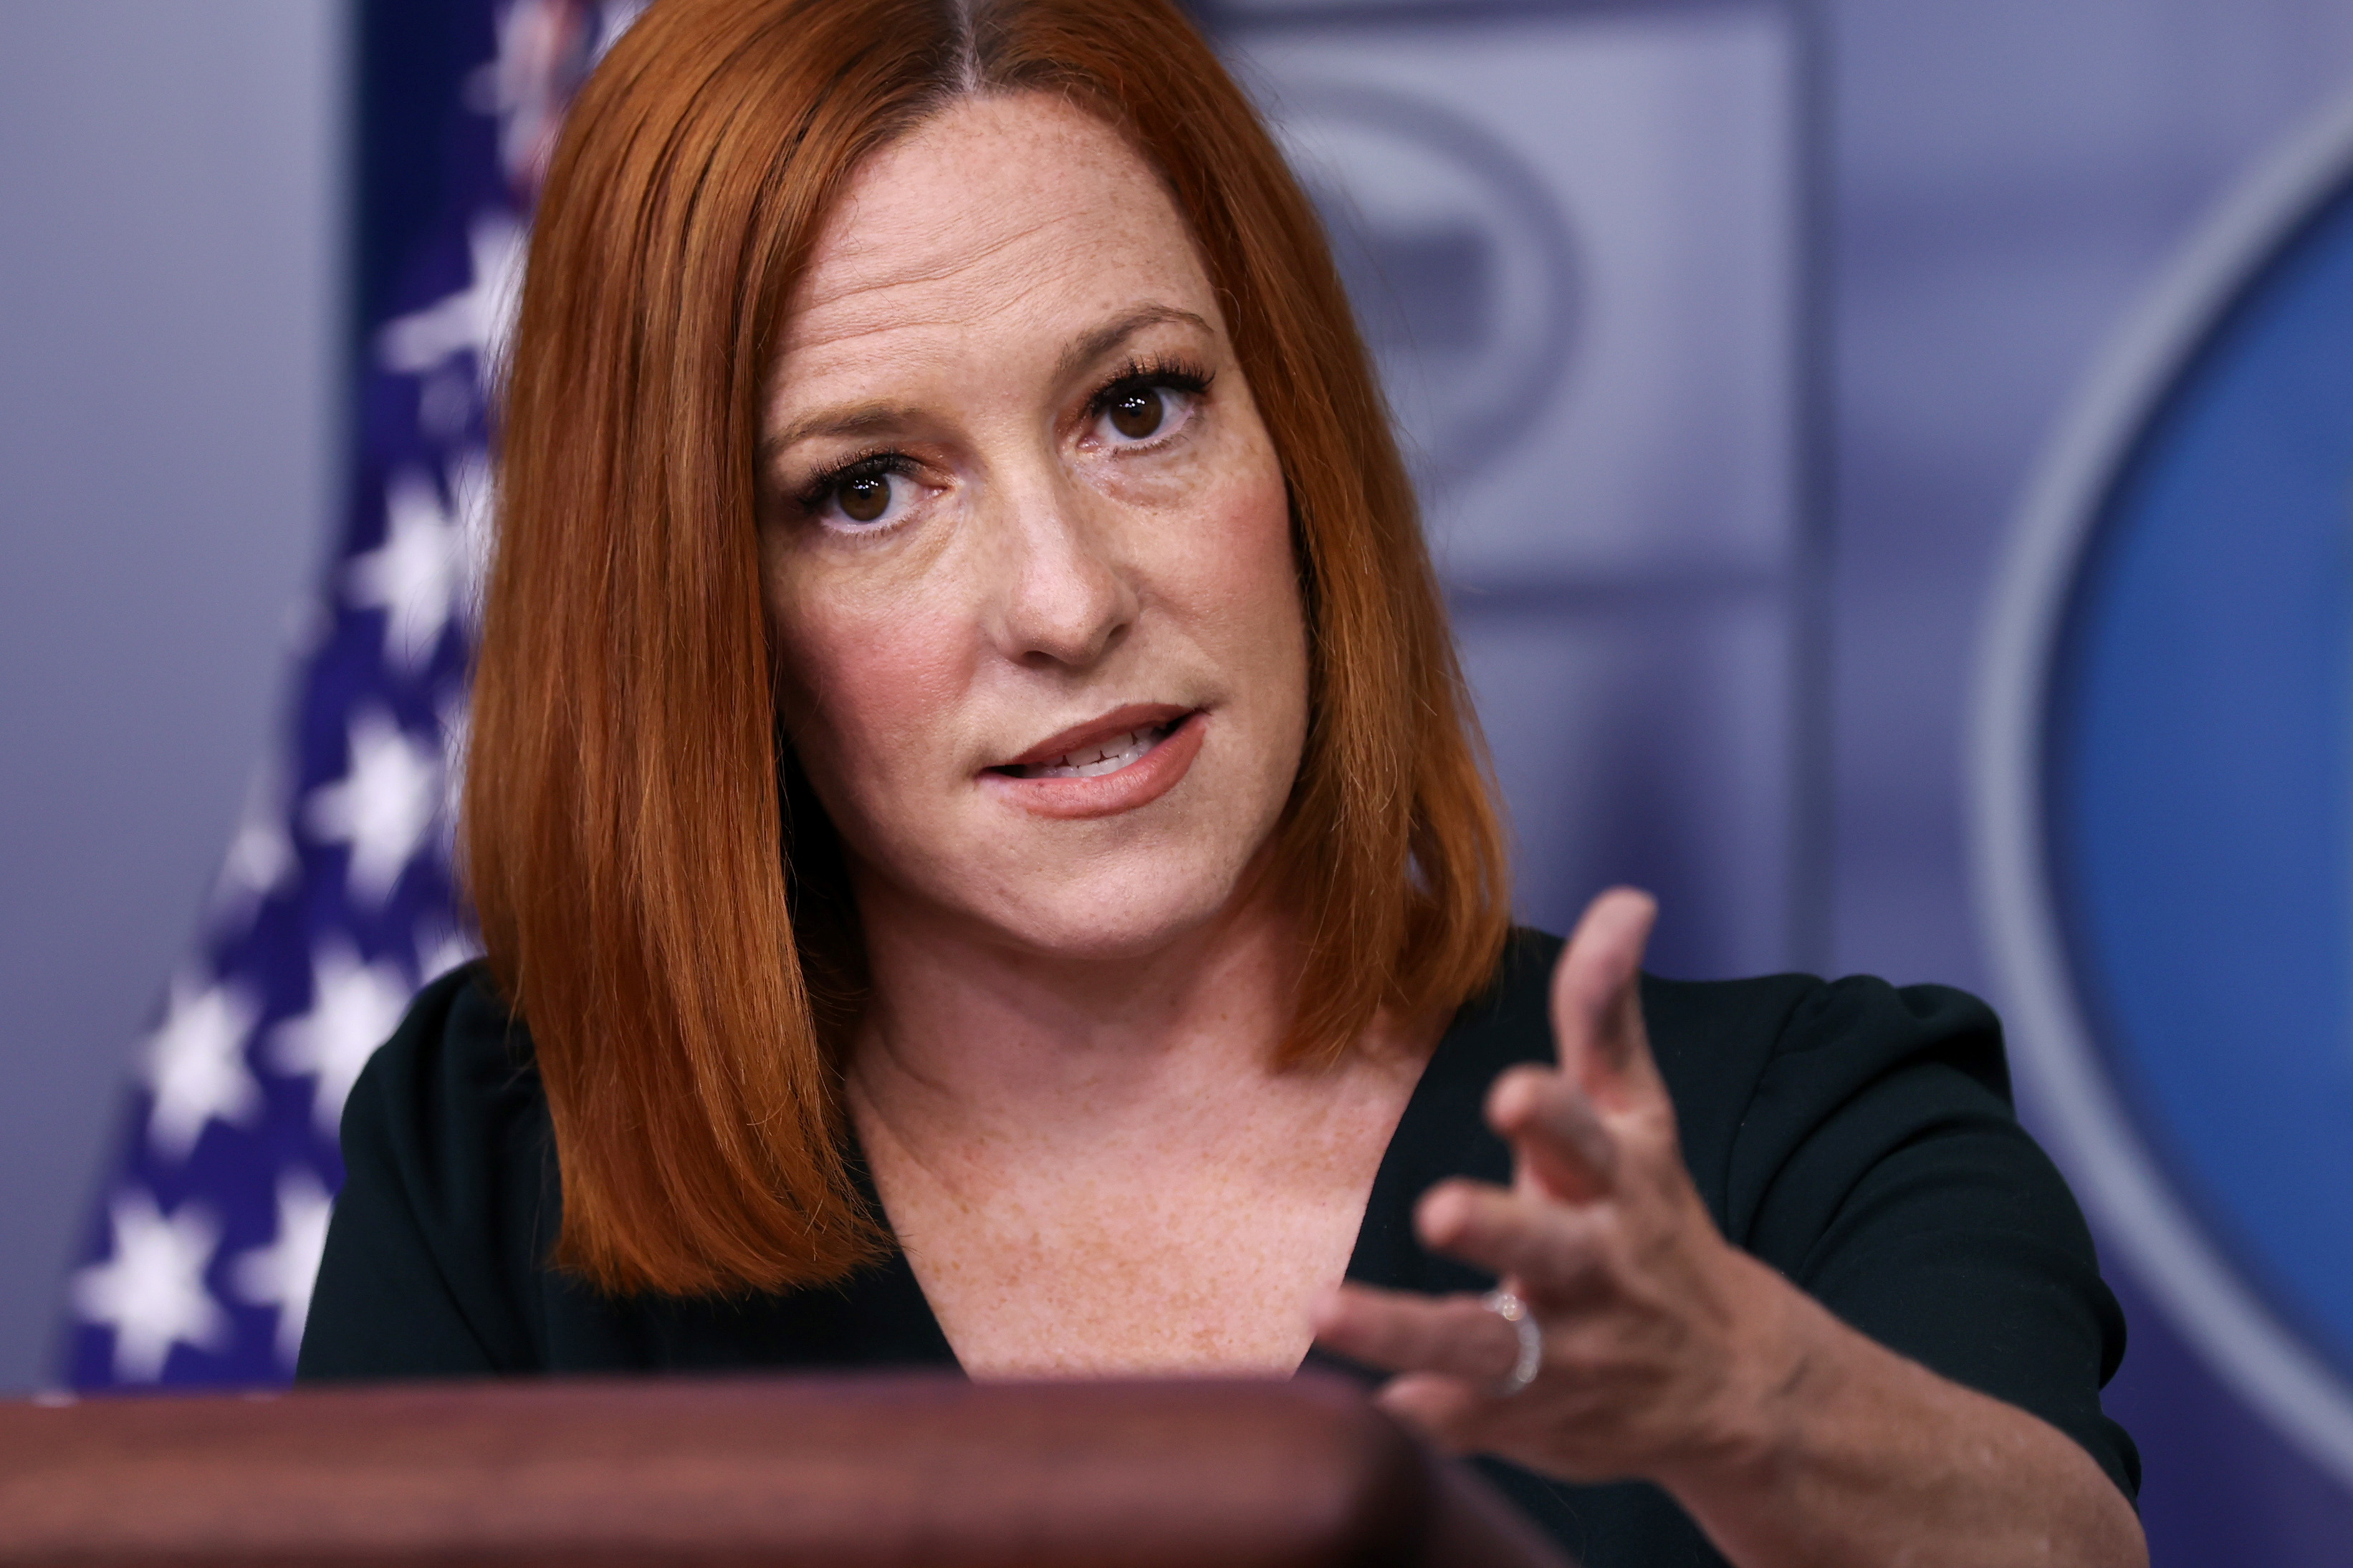 White House Press Secretary Jen Psaki holds the daily press briefing at the White House in Washington, U.S. May 4, 2021.  REUTERS/Jonathan Ernst